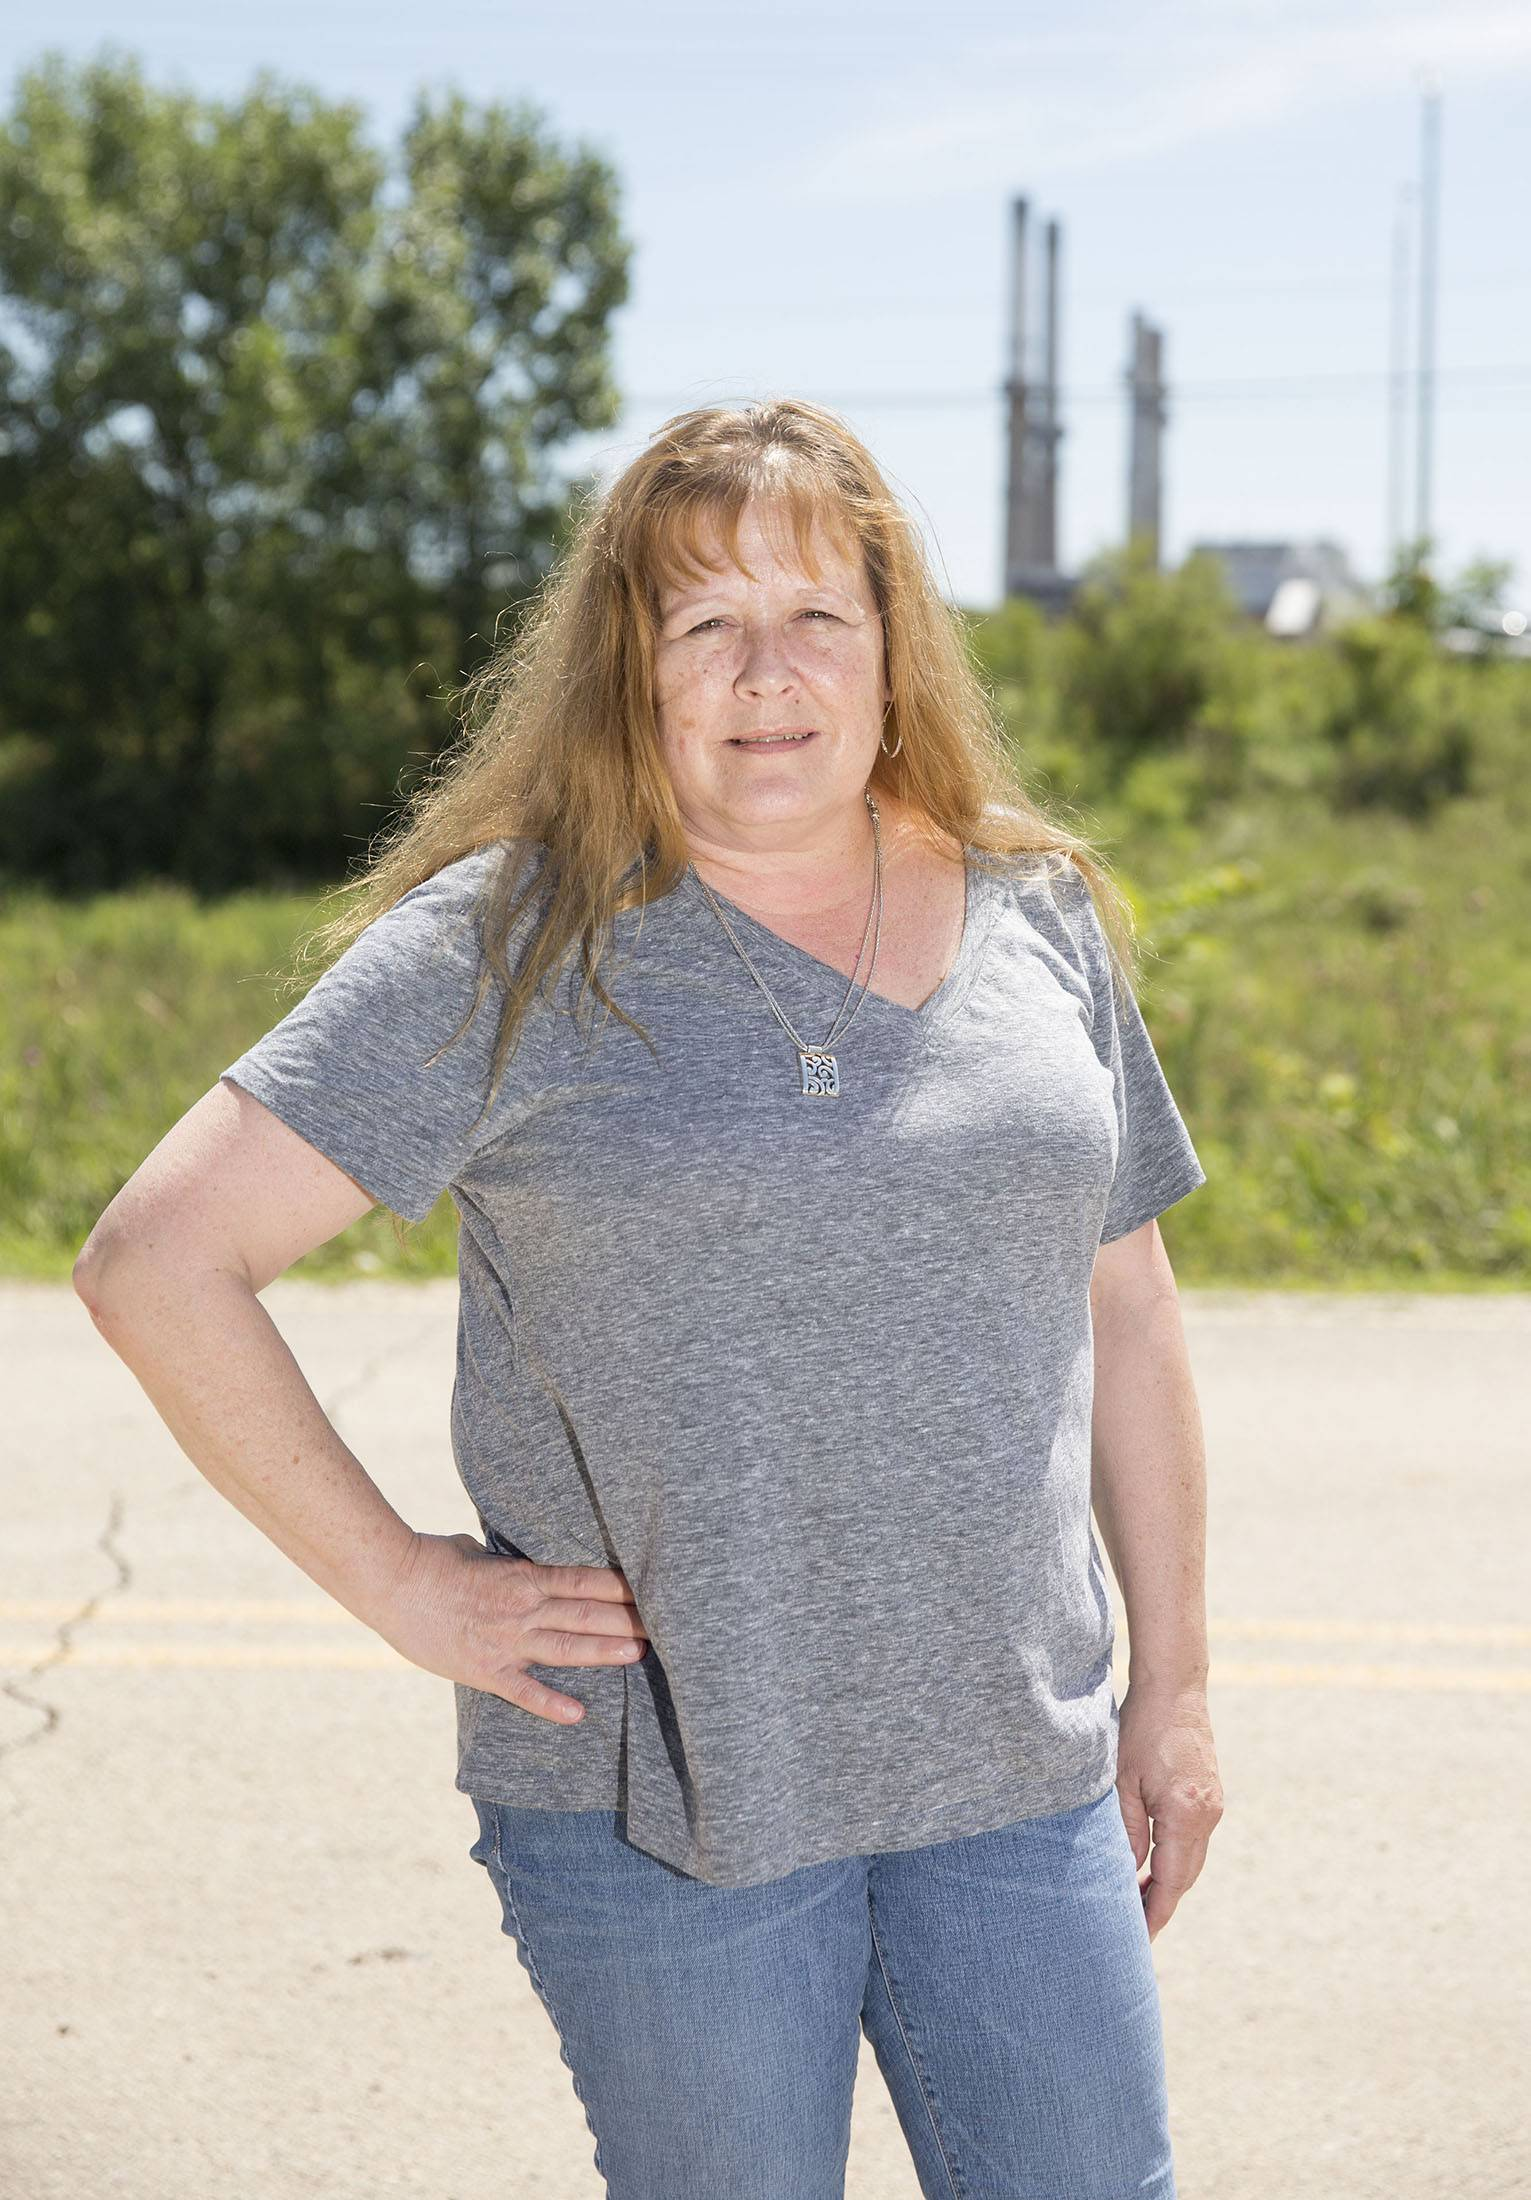 Lynnette Faje, a former employee of NRG Energy, near the NRG Energy, Inc. Will County Generating Station in Romeoville, Illinois, on July 26.